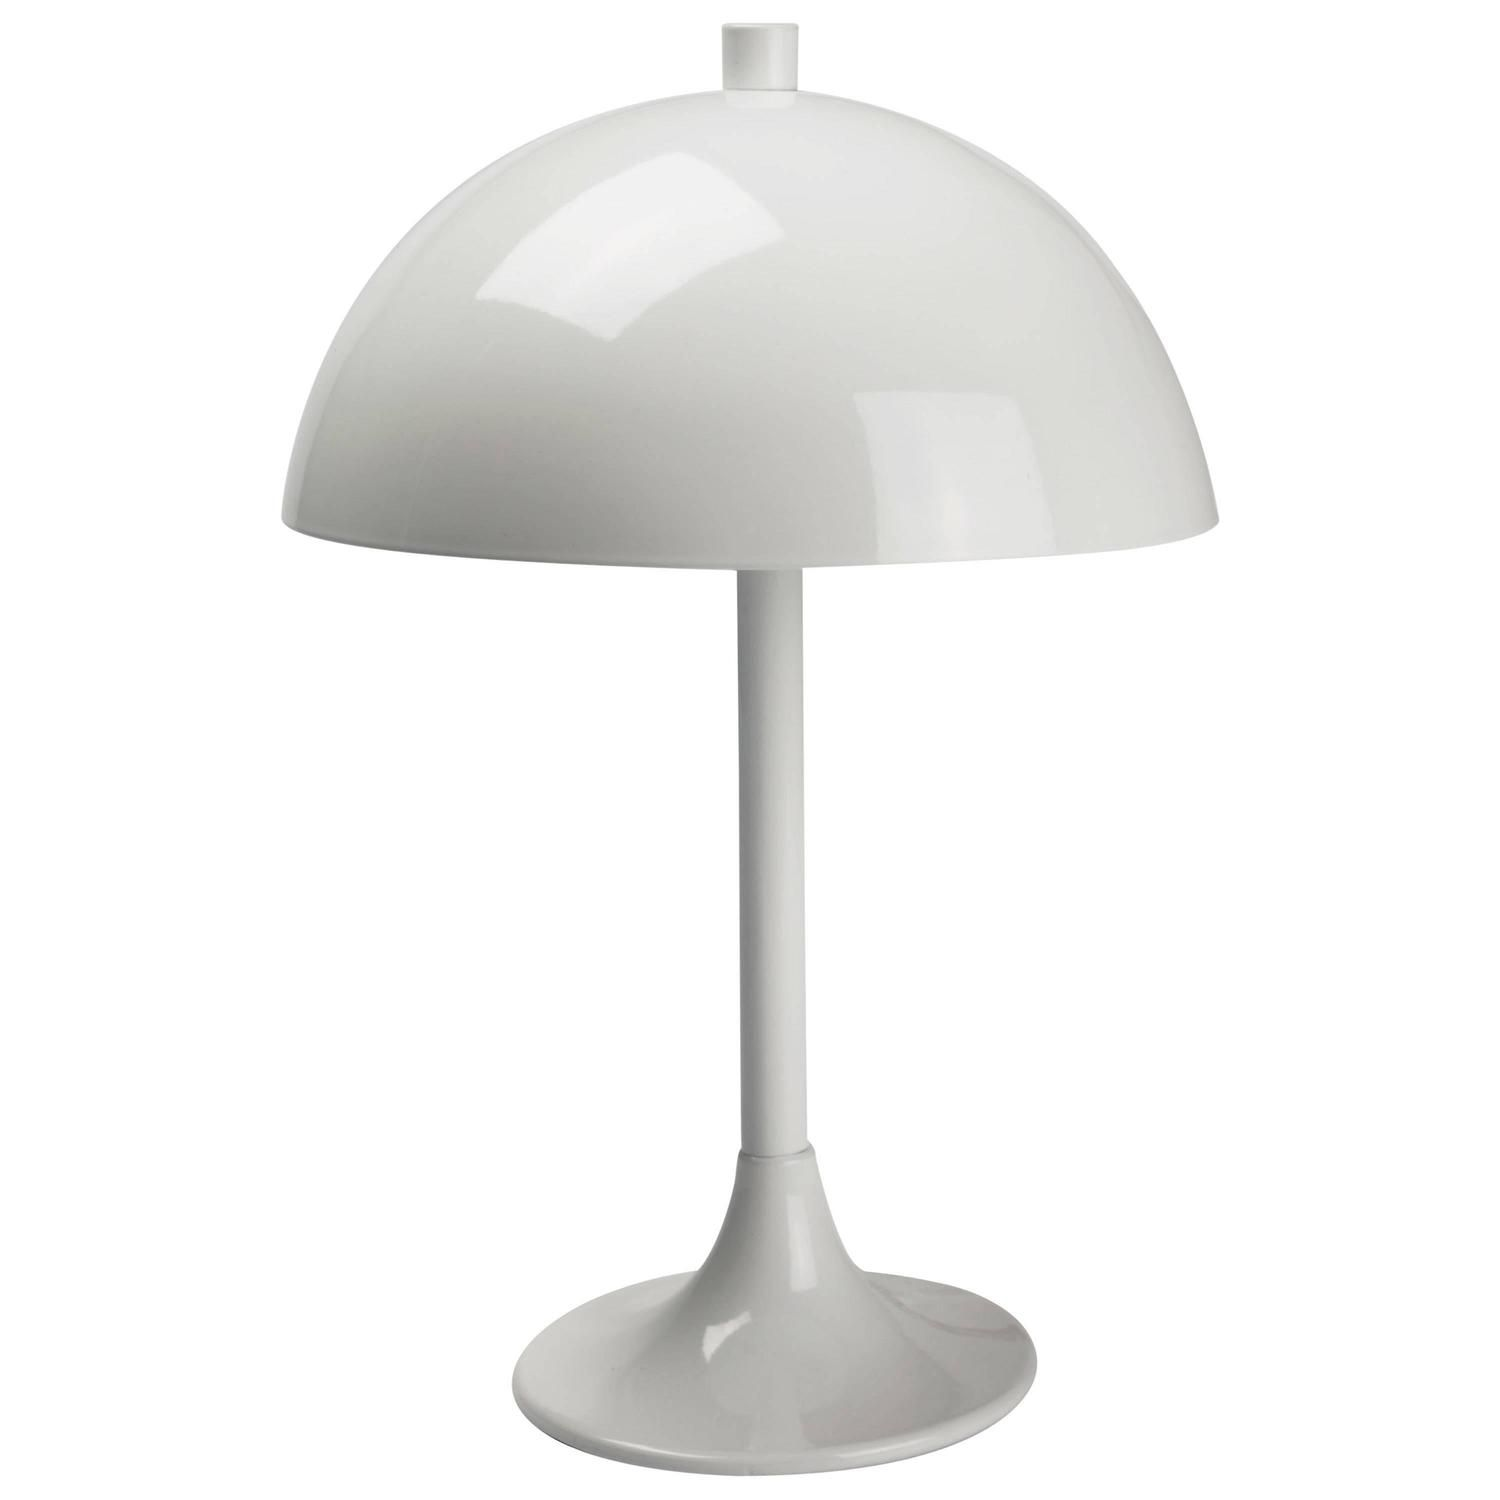 Vintage French Minimal White Mushroom Lamp in Metal by Editions – Tulip Desk Lamp